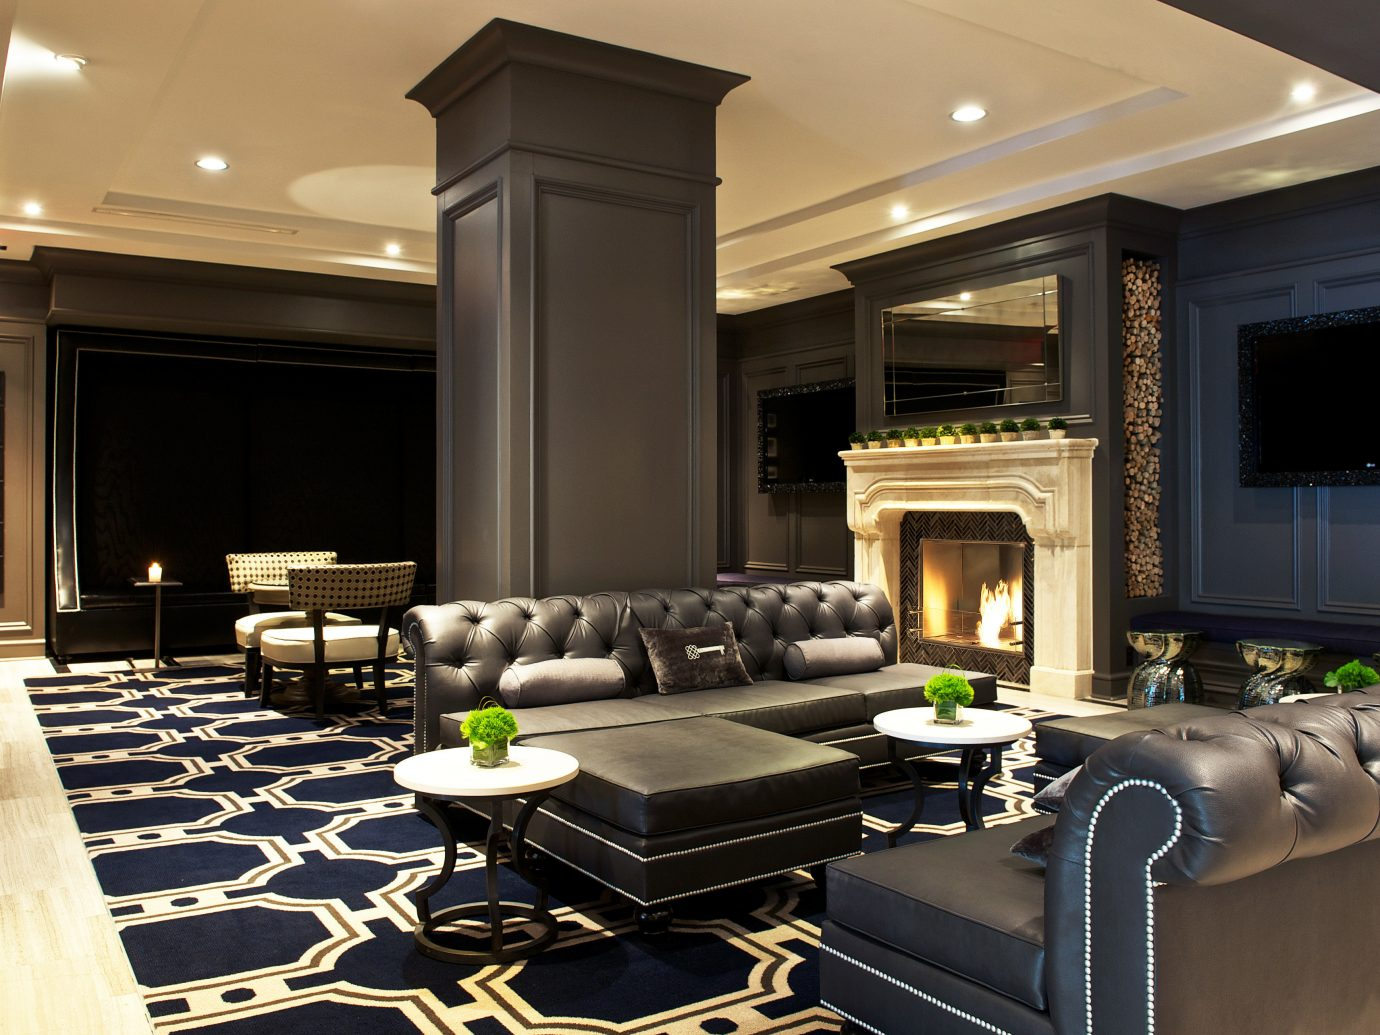 Boutique Budget City Hotels Lobby Lounge Modern indoor floor room ceiling Living property window living room estate interior design home Suite lighting furniture conference hall condominium recreation room Design mansion conference room